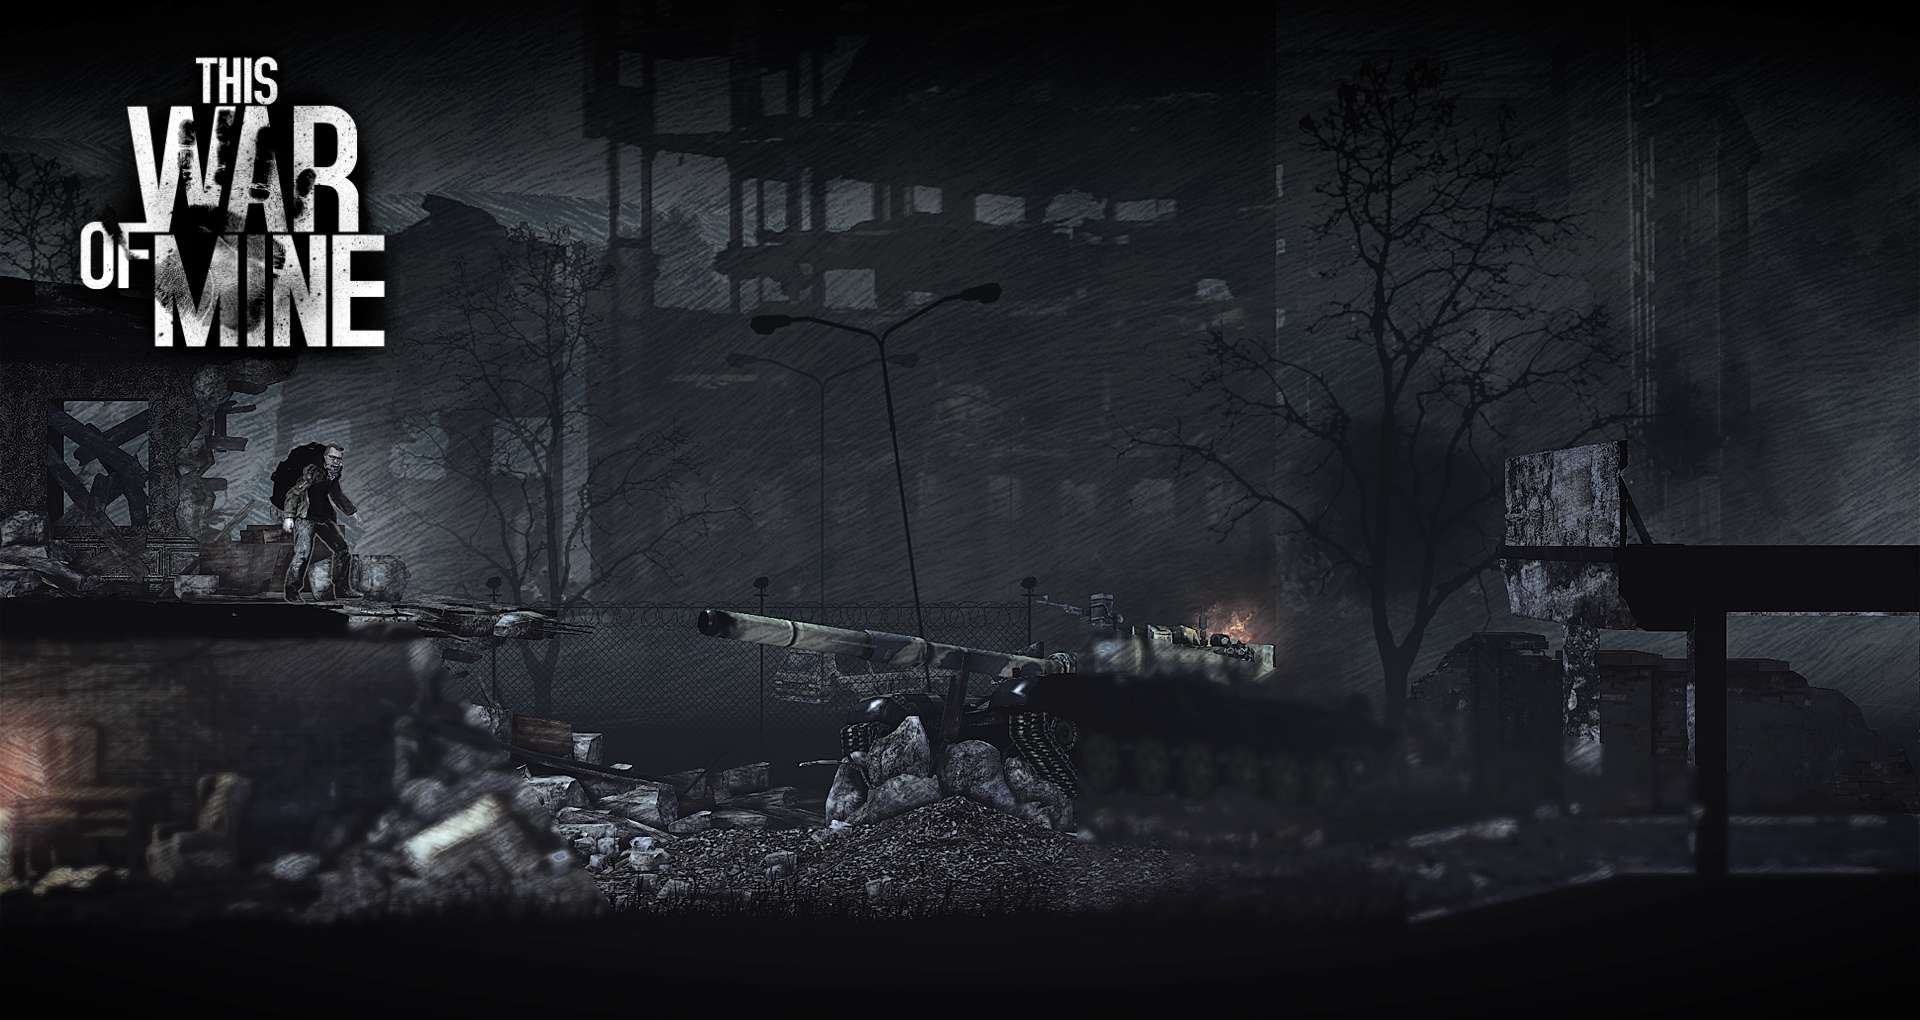 Screenshot from This War of Mine